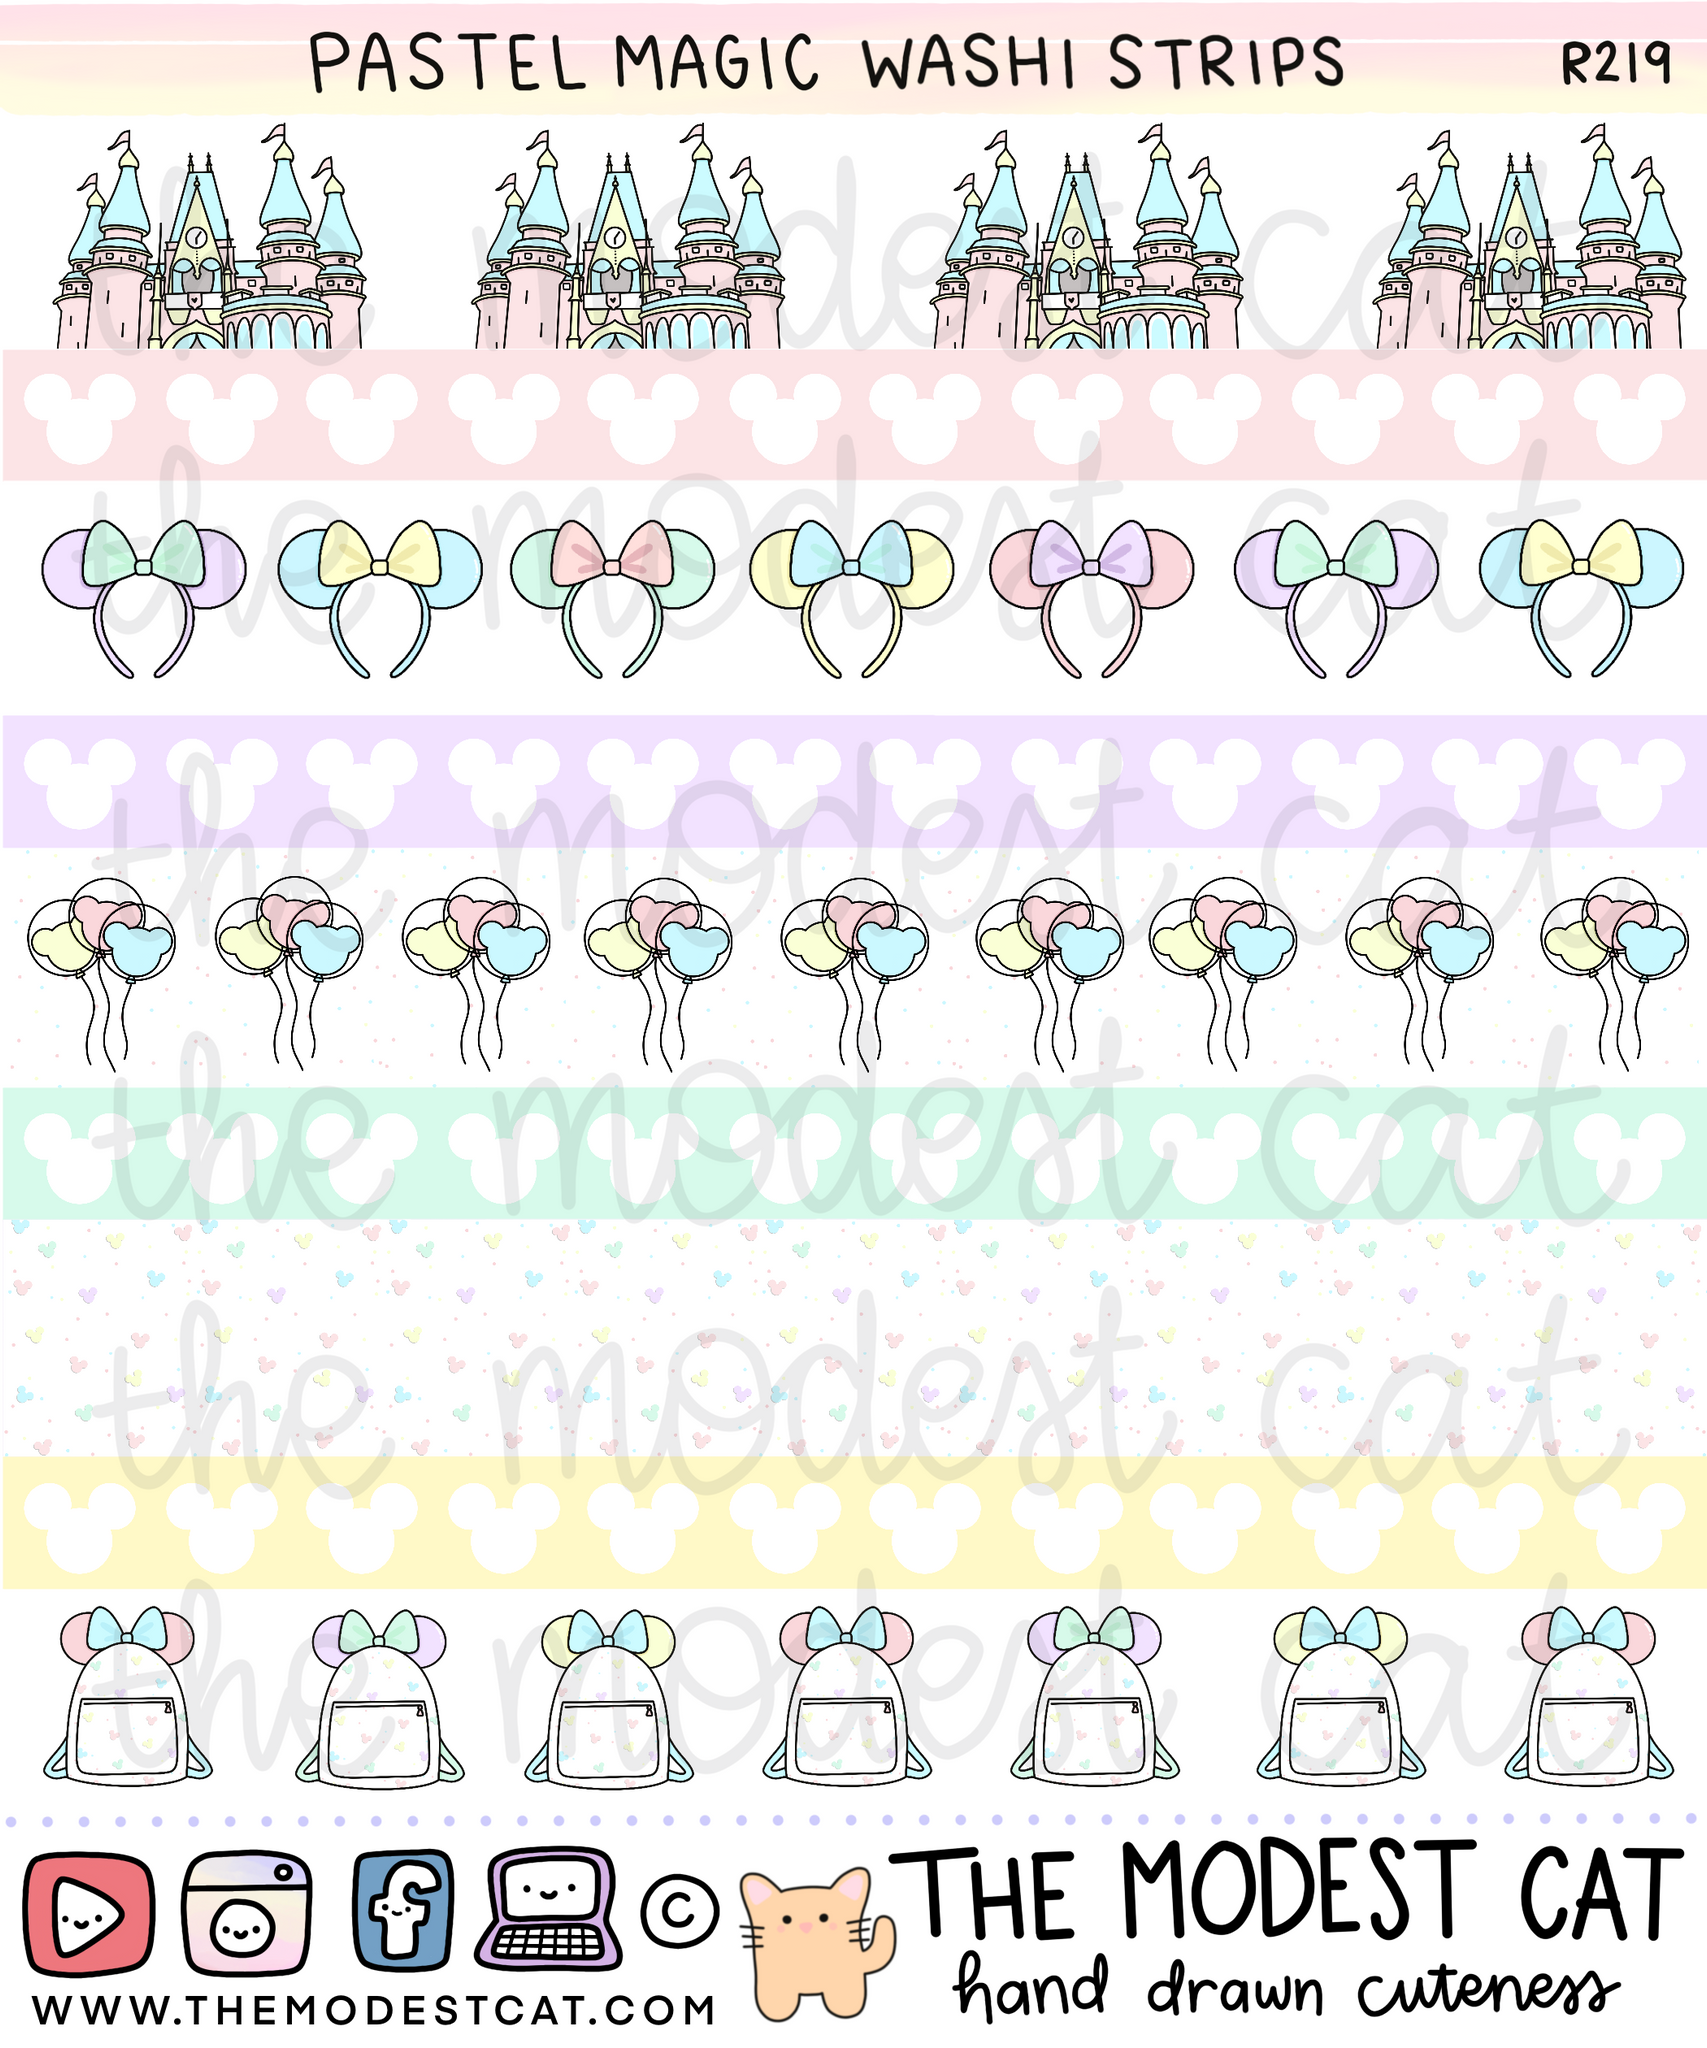 Pastel Magic Washi Strips (R219)